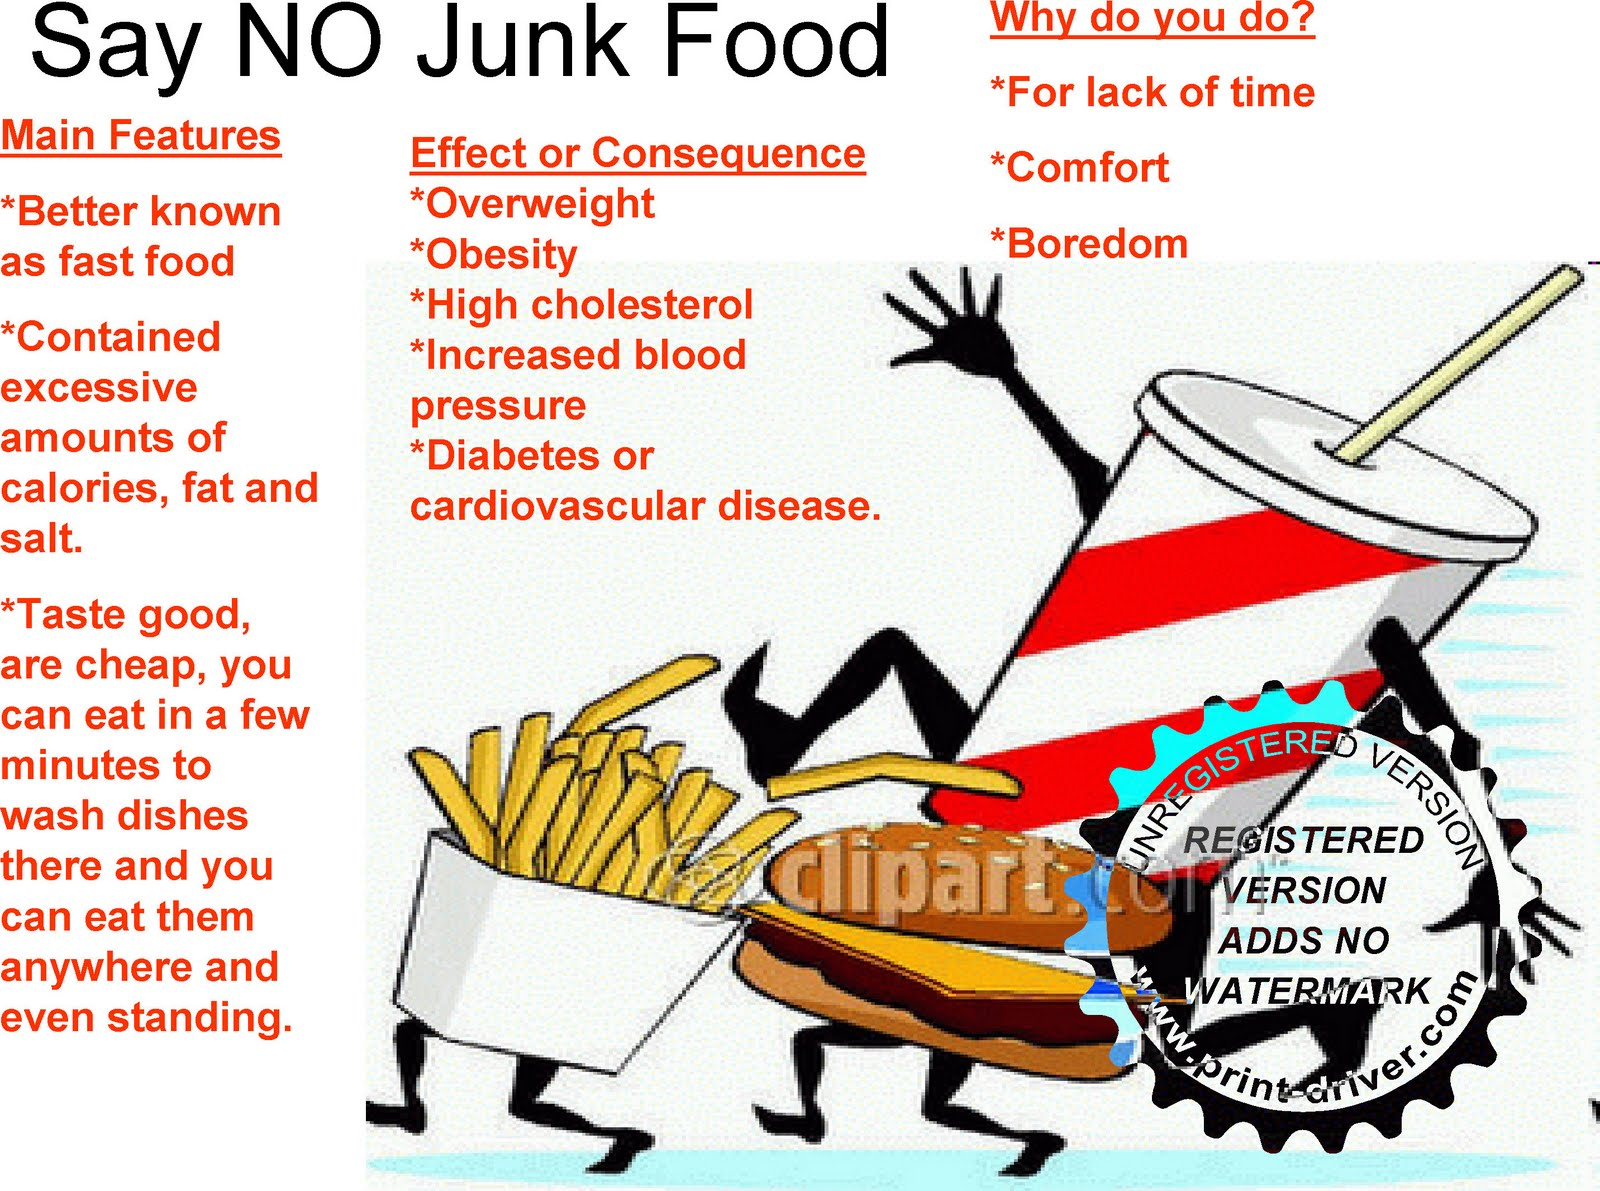 junk food beneficial or not essay Unlike most editing & proofreading services, we edit for everything: grammar, spelling, punctuation, idea flow, sentence structure, & more get started now.